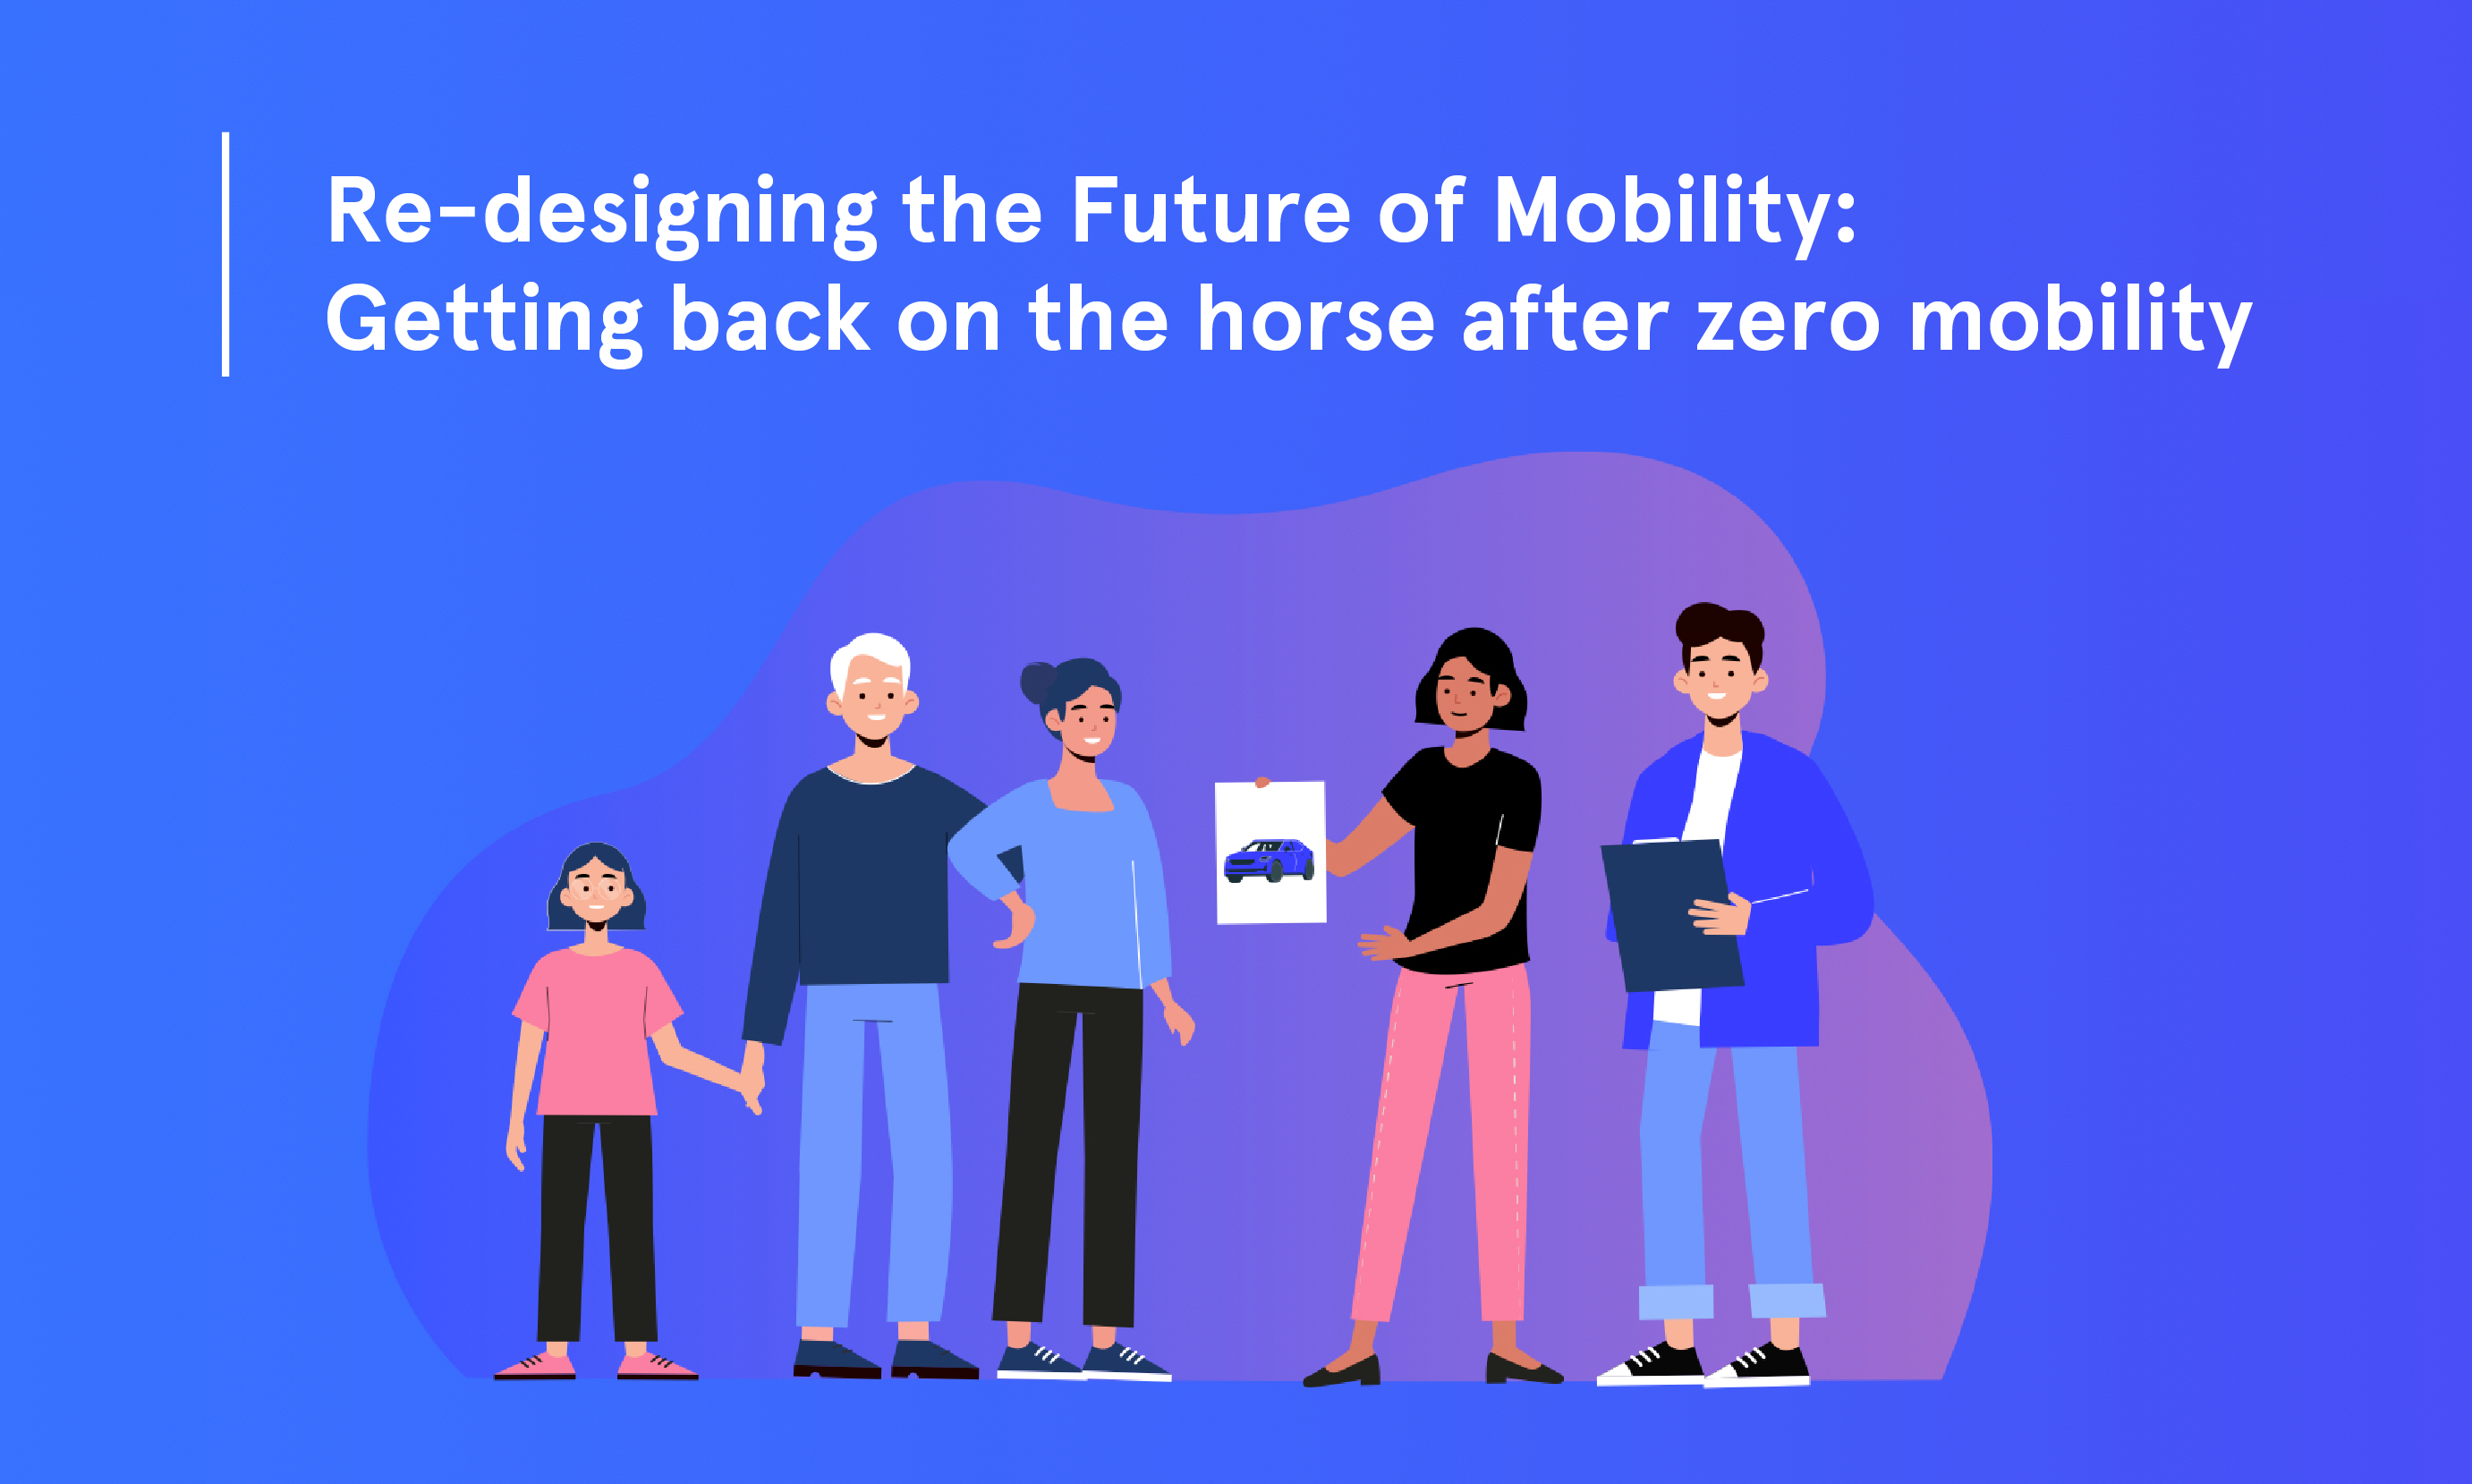 Re-Designing the Future of Mobility